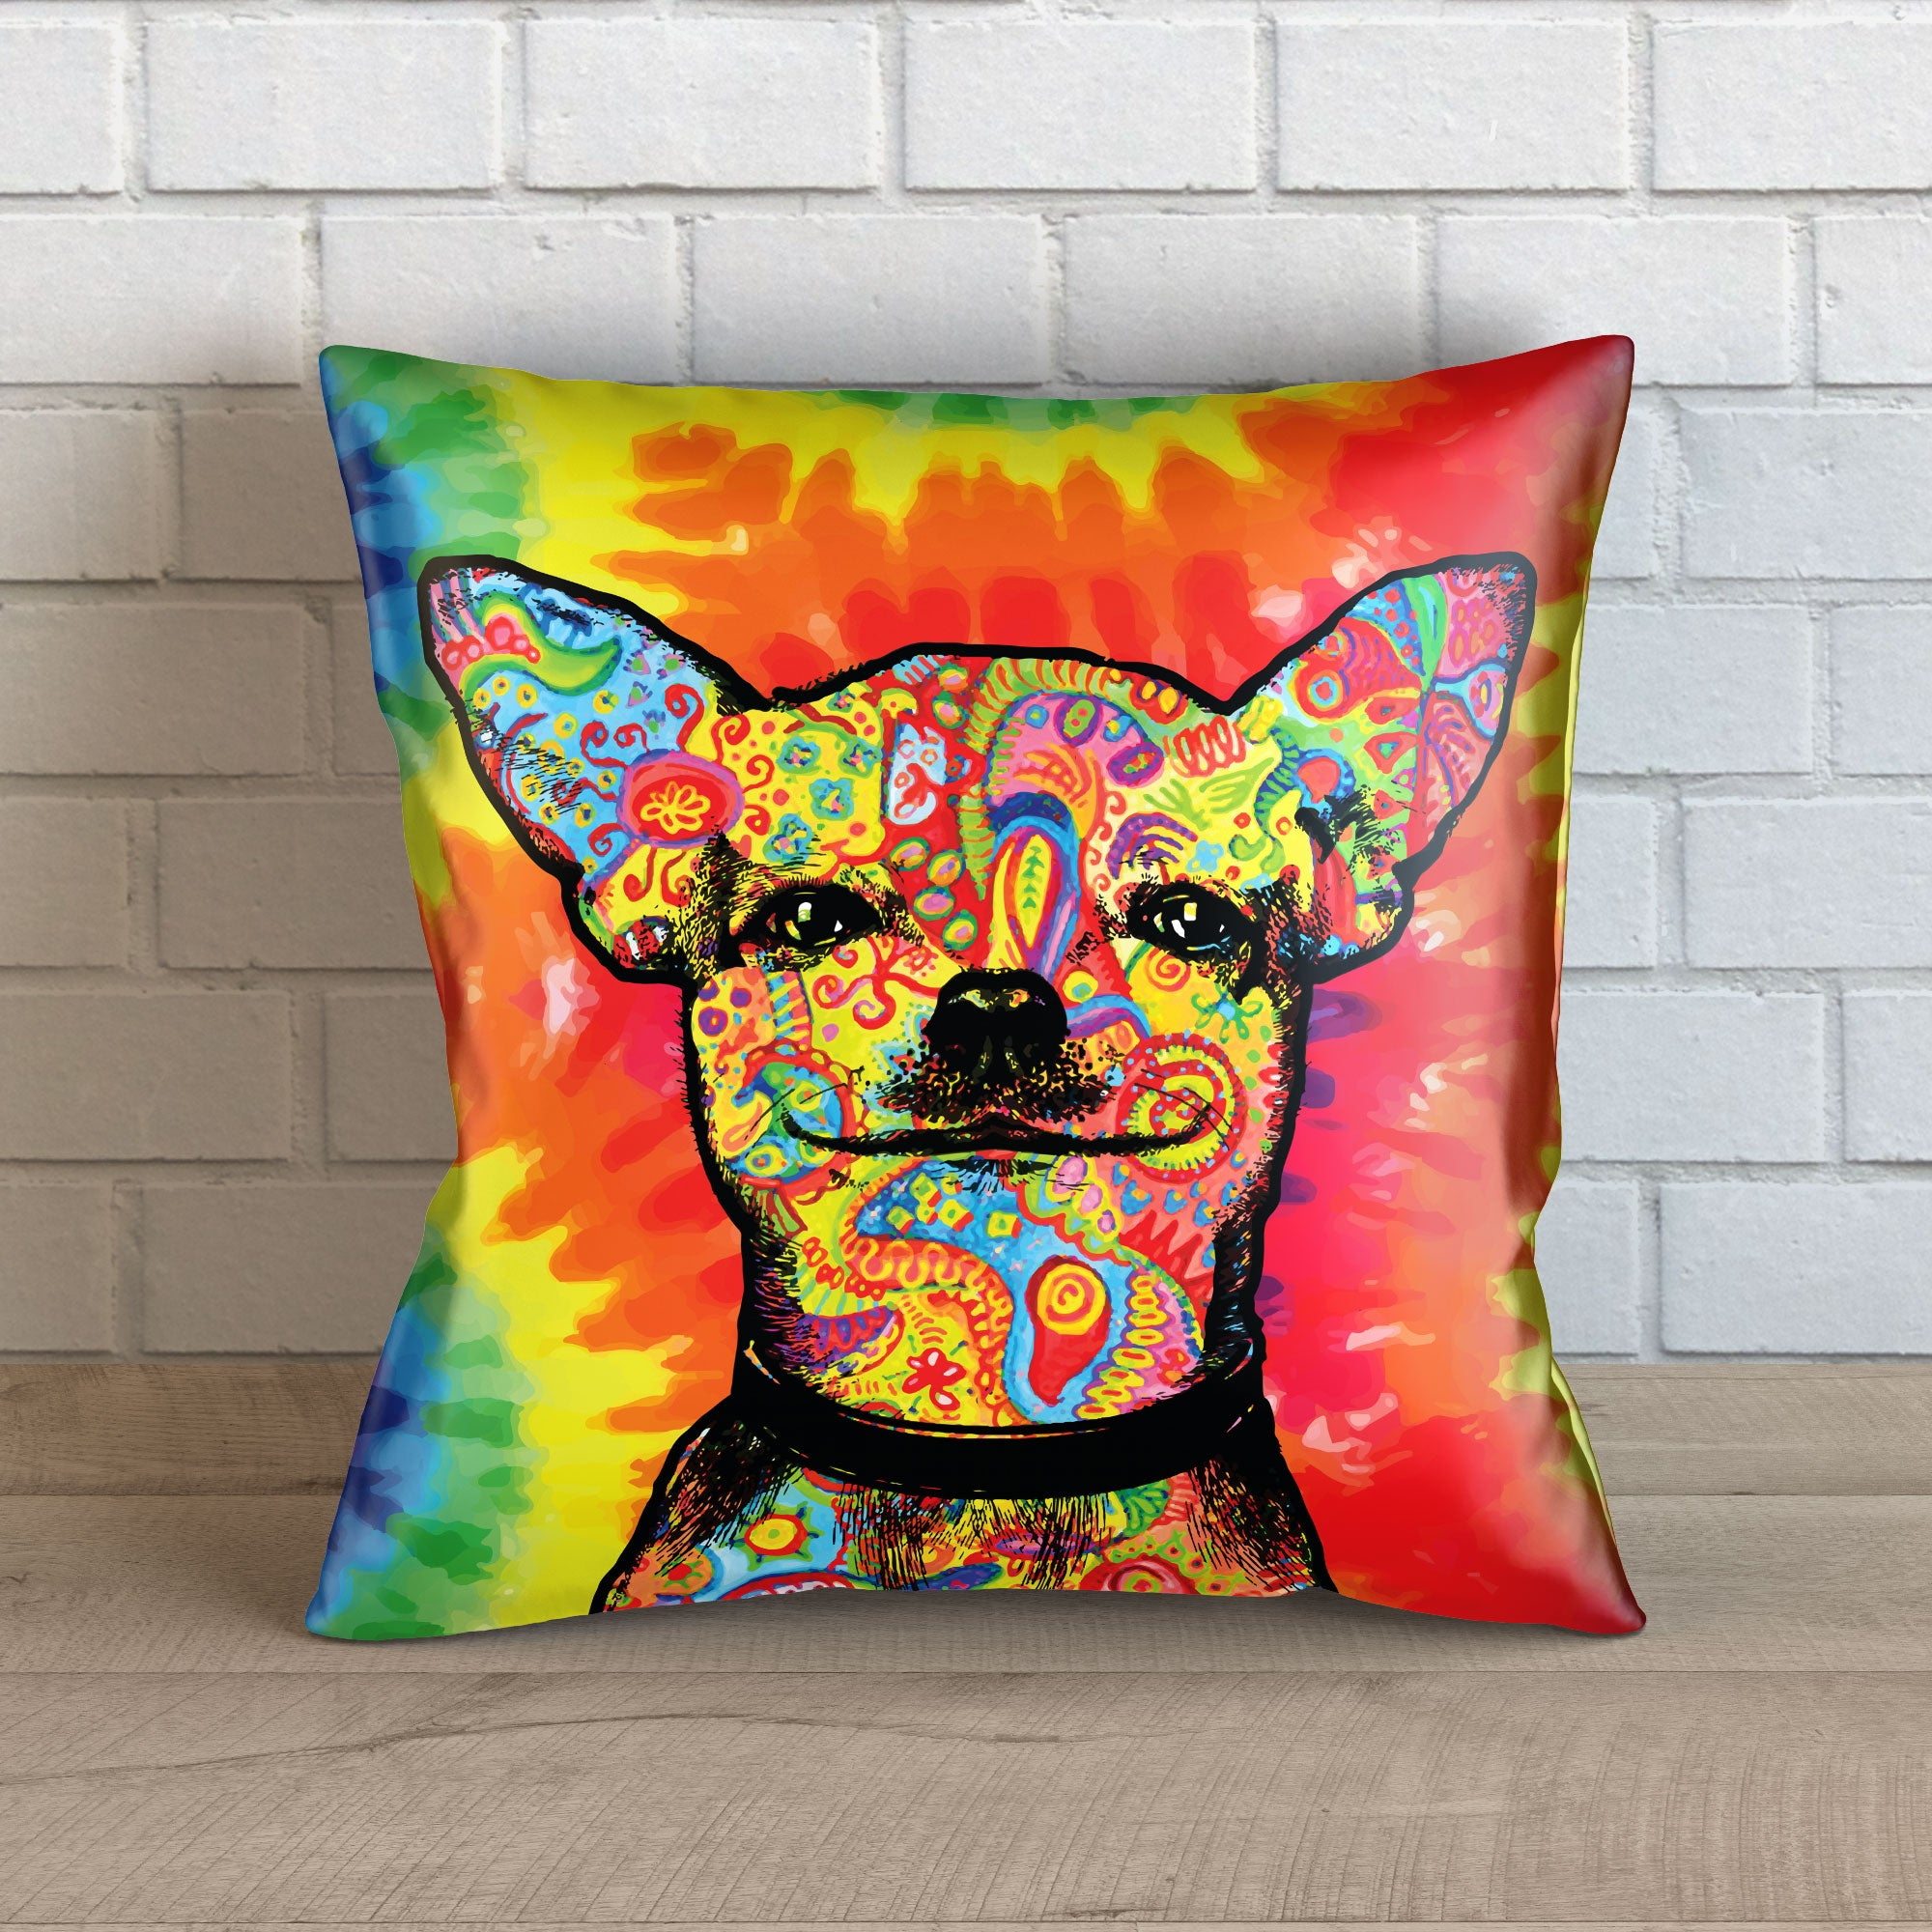 "Colorful Chihuahua Throw Pillow Cover - 18"" x 18"""